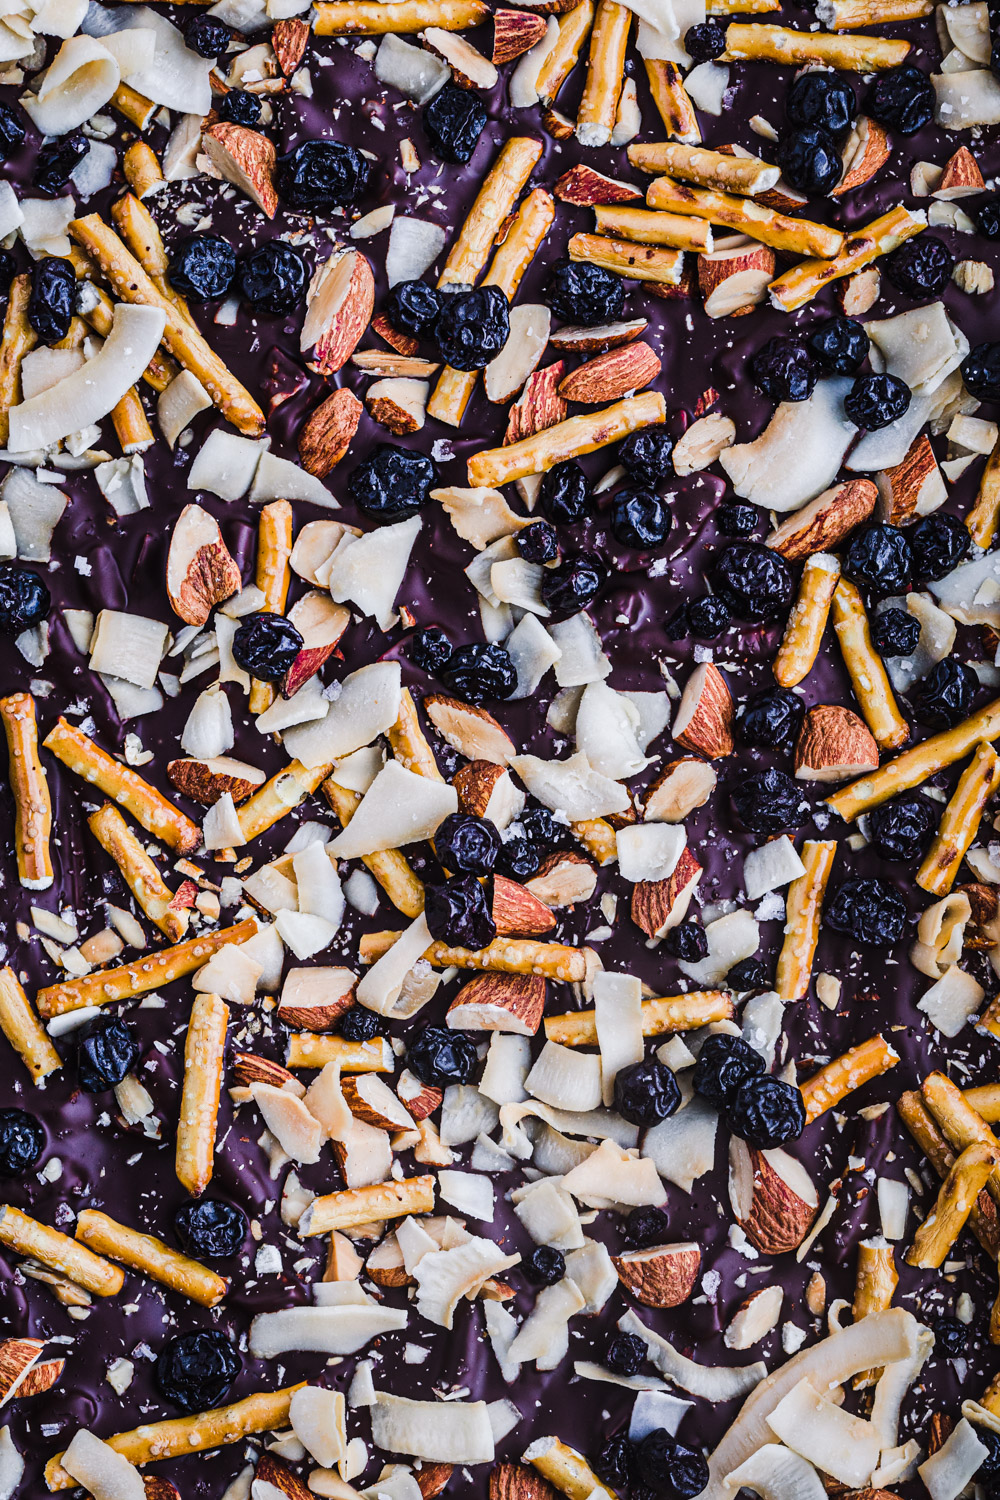 Chocolate bark with almonds, coconut flakes, dried cherries, pretzels, and flaky sea salt.